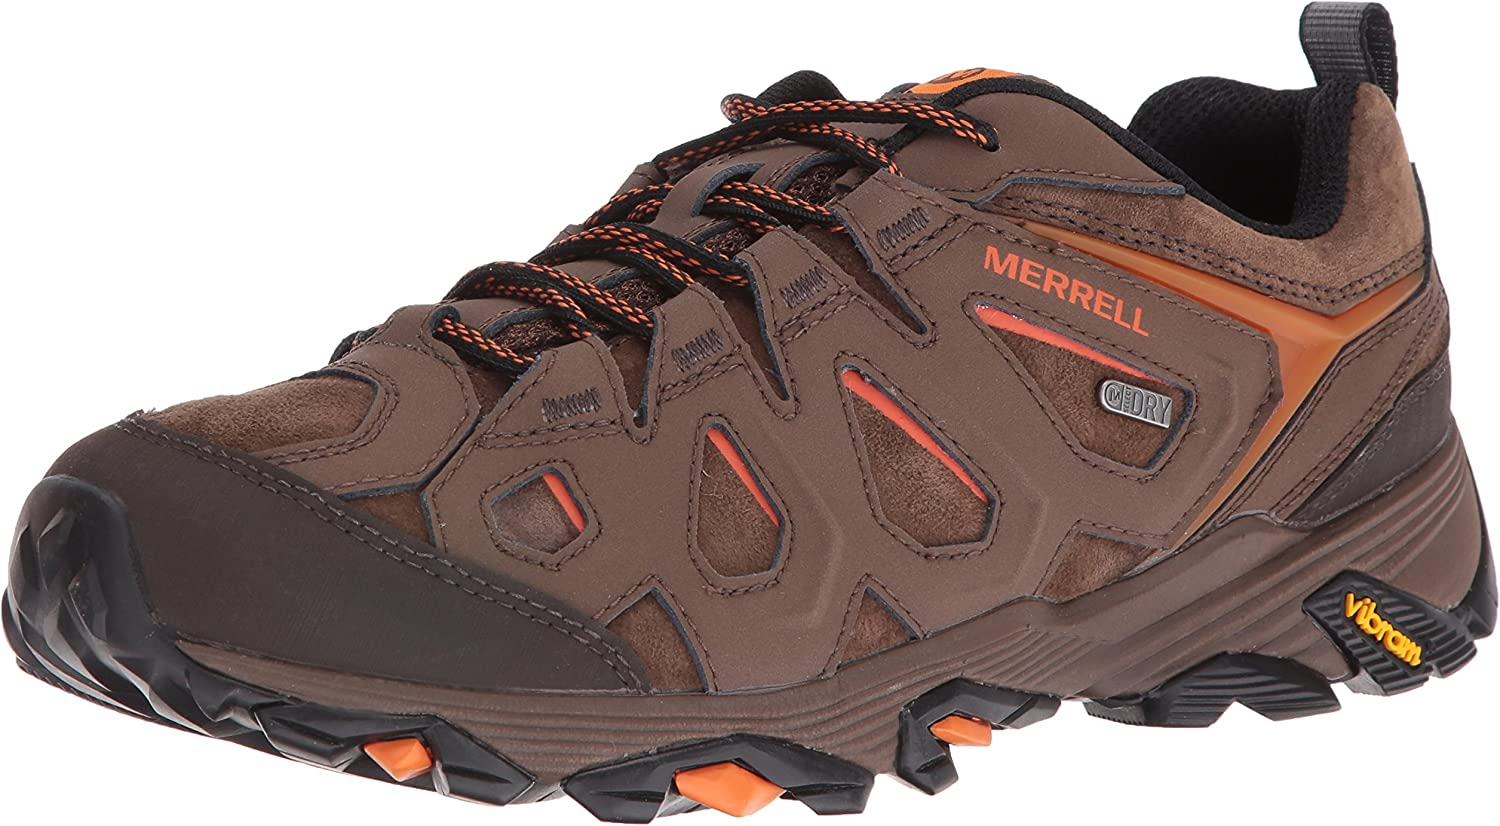 Merrell Men's Moab Fst Ltr Waterproof Hiking shoes